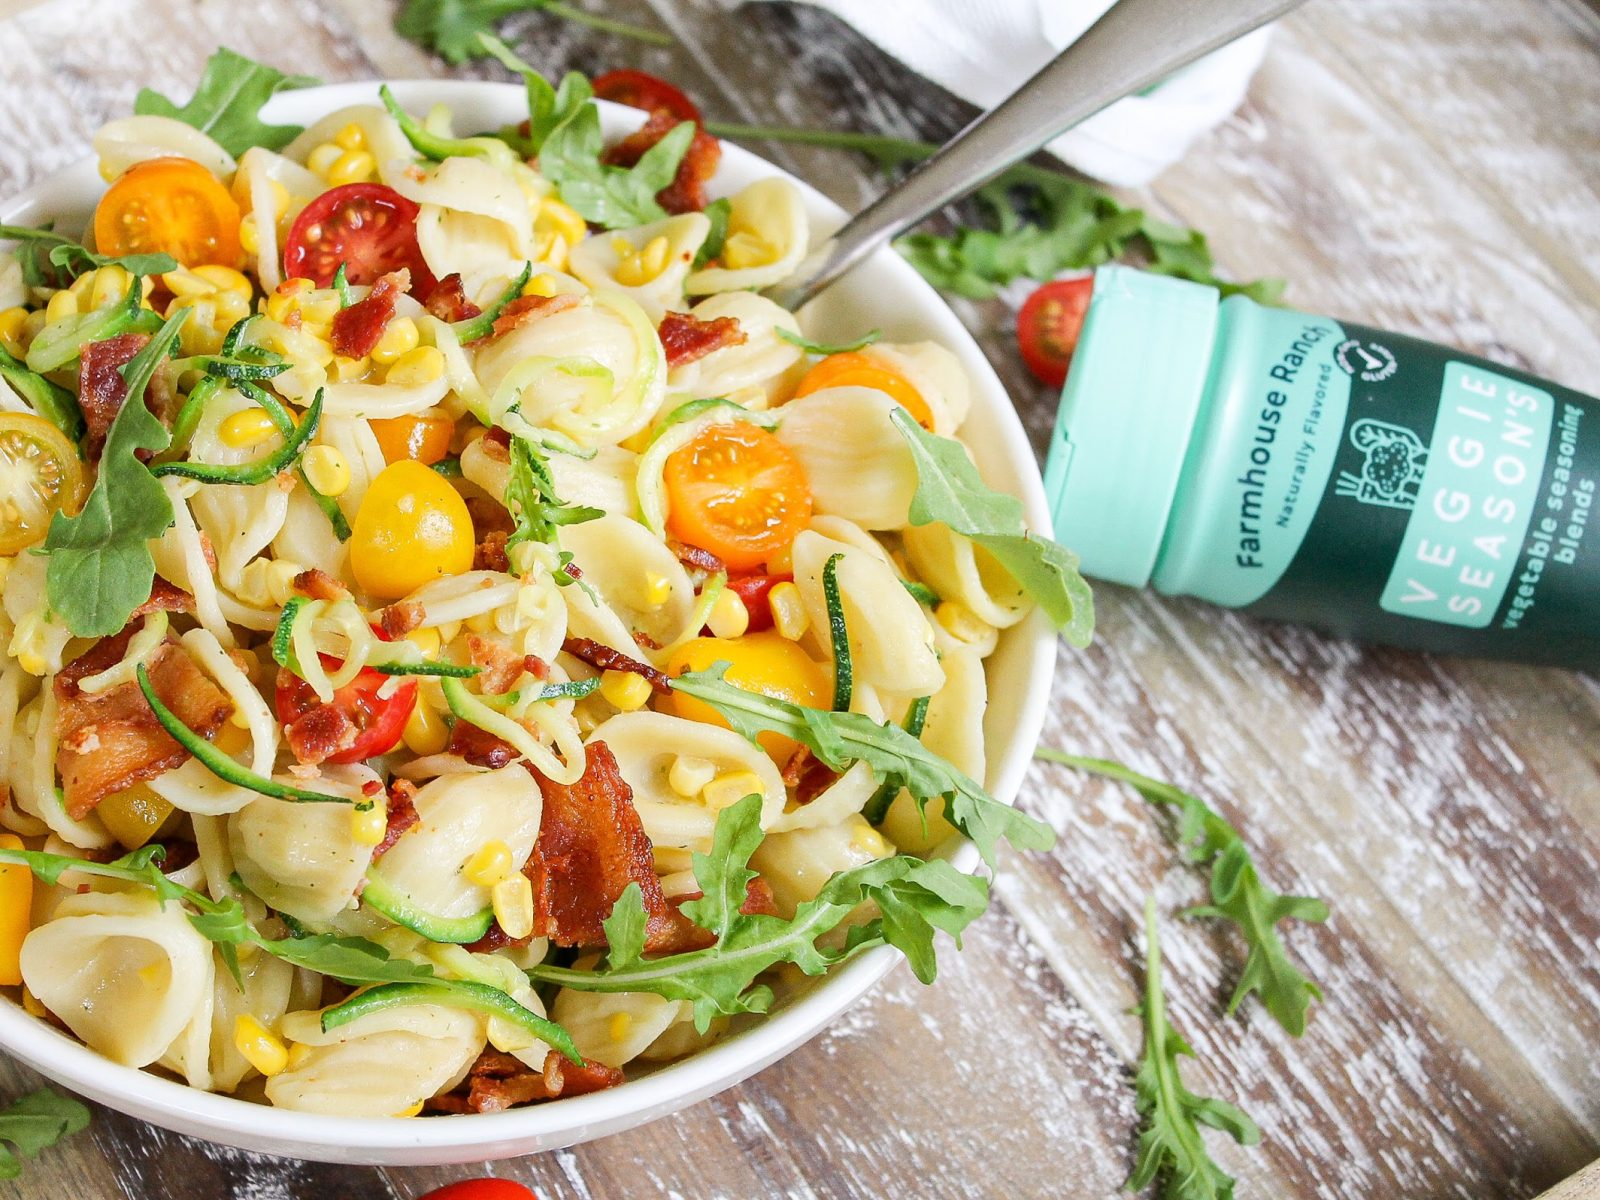 Make Mealtime Enjoyable With Veggie Season's - Try My Ranch Bacon Pasta Salad With Zucchini & Corn on I Heart Publix 4